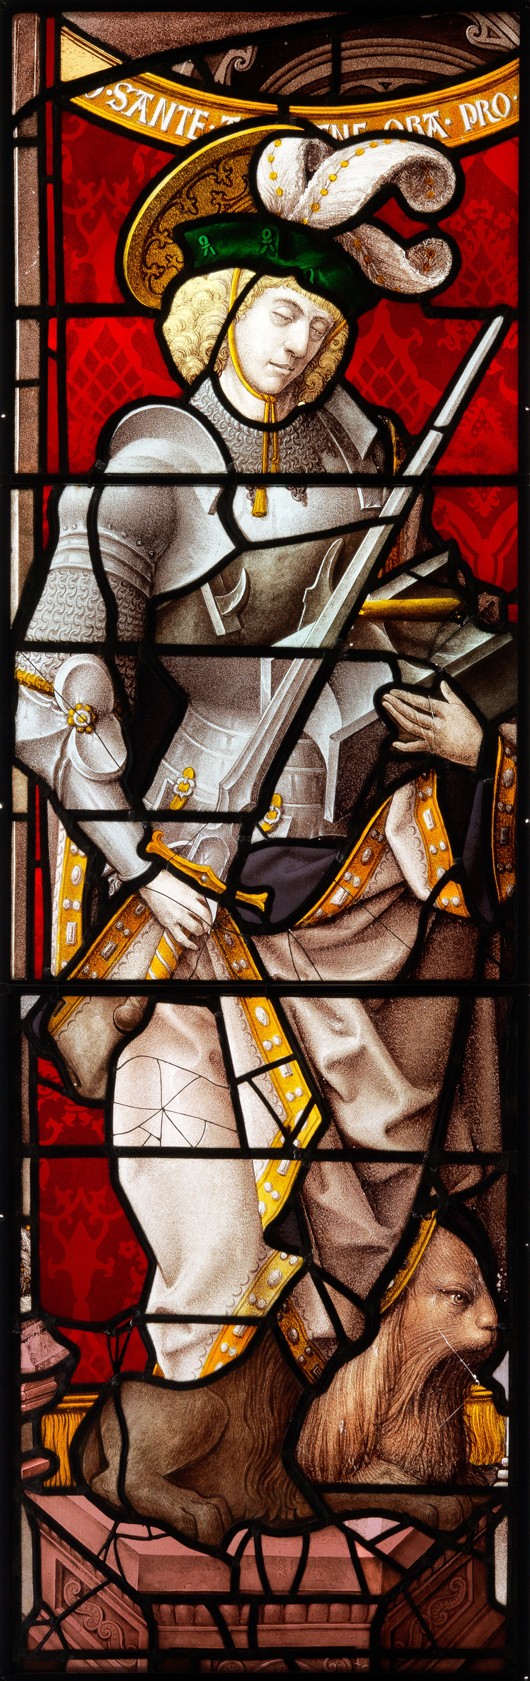 A stained glass panel of St Adrian of Nicomedia, probably Flemish or German, early 16th century and later. 186.5 x 59 cm. See Detroit Institute of Art, Accession No. 58.111 for what appears to be a companion window depicting St. Wenceslas. Est. £1,000-£2,000. Thomas Del Mar image